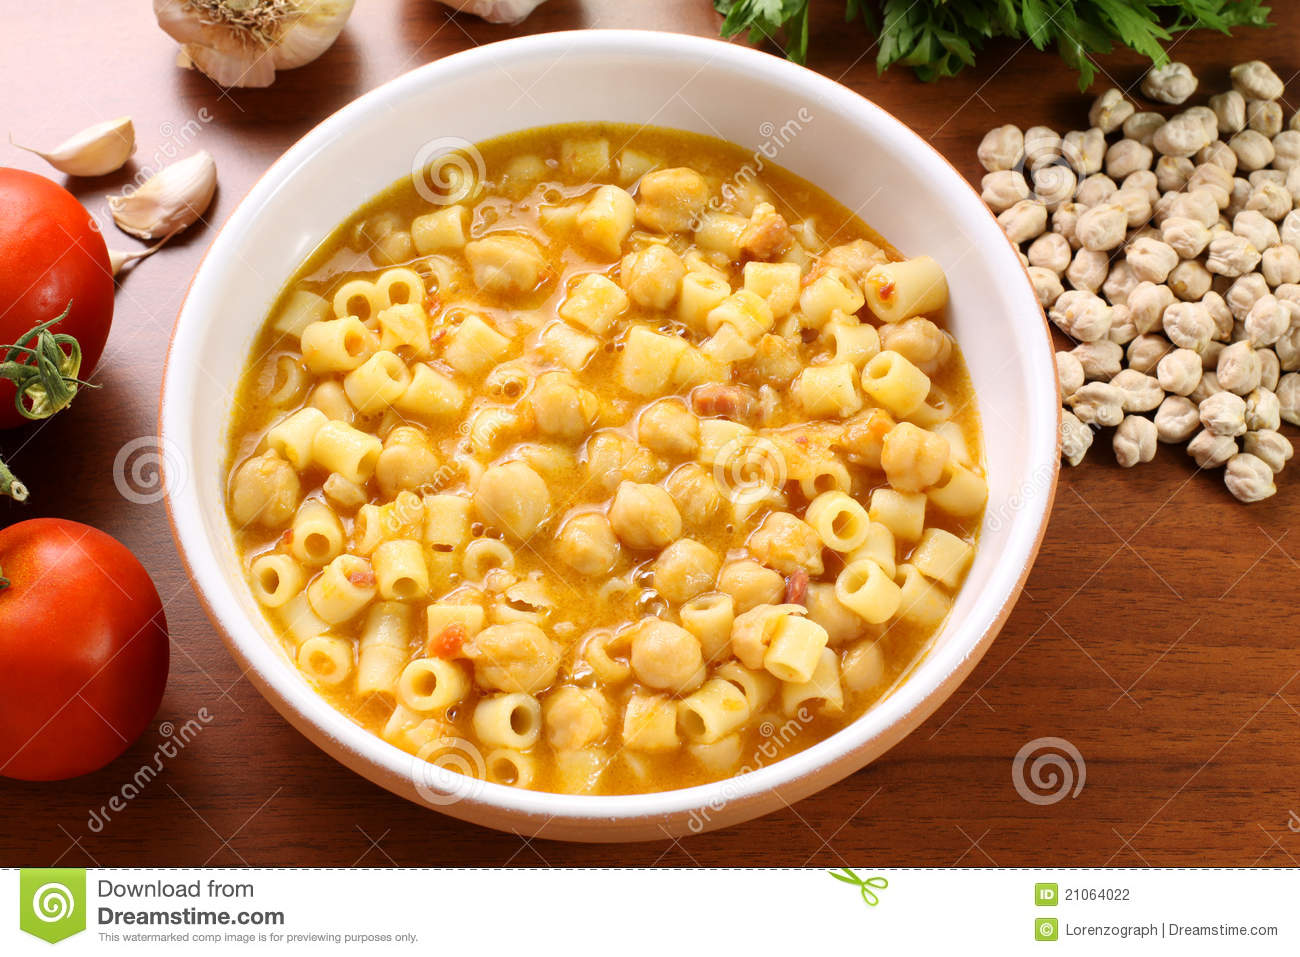 Pasta With Chickpeas Stock Photography - Image: 21064022